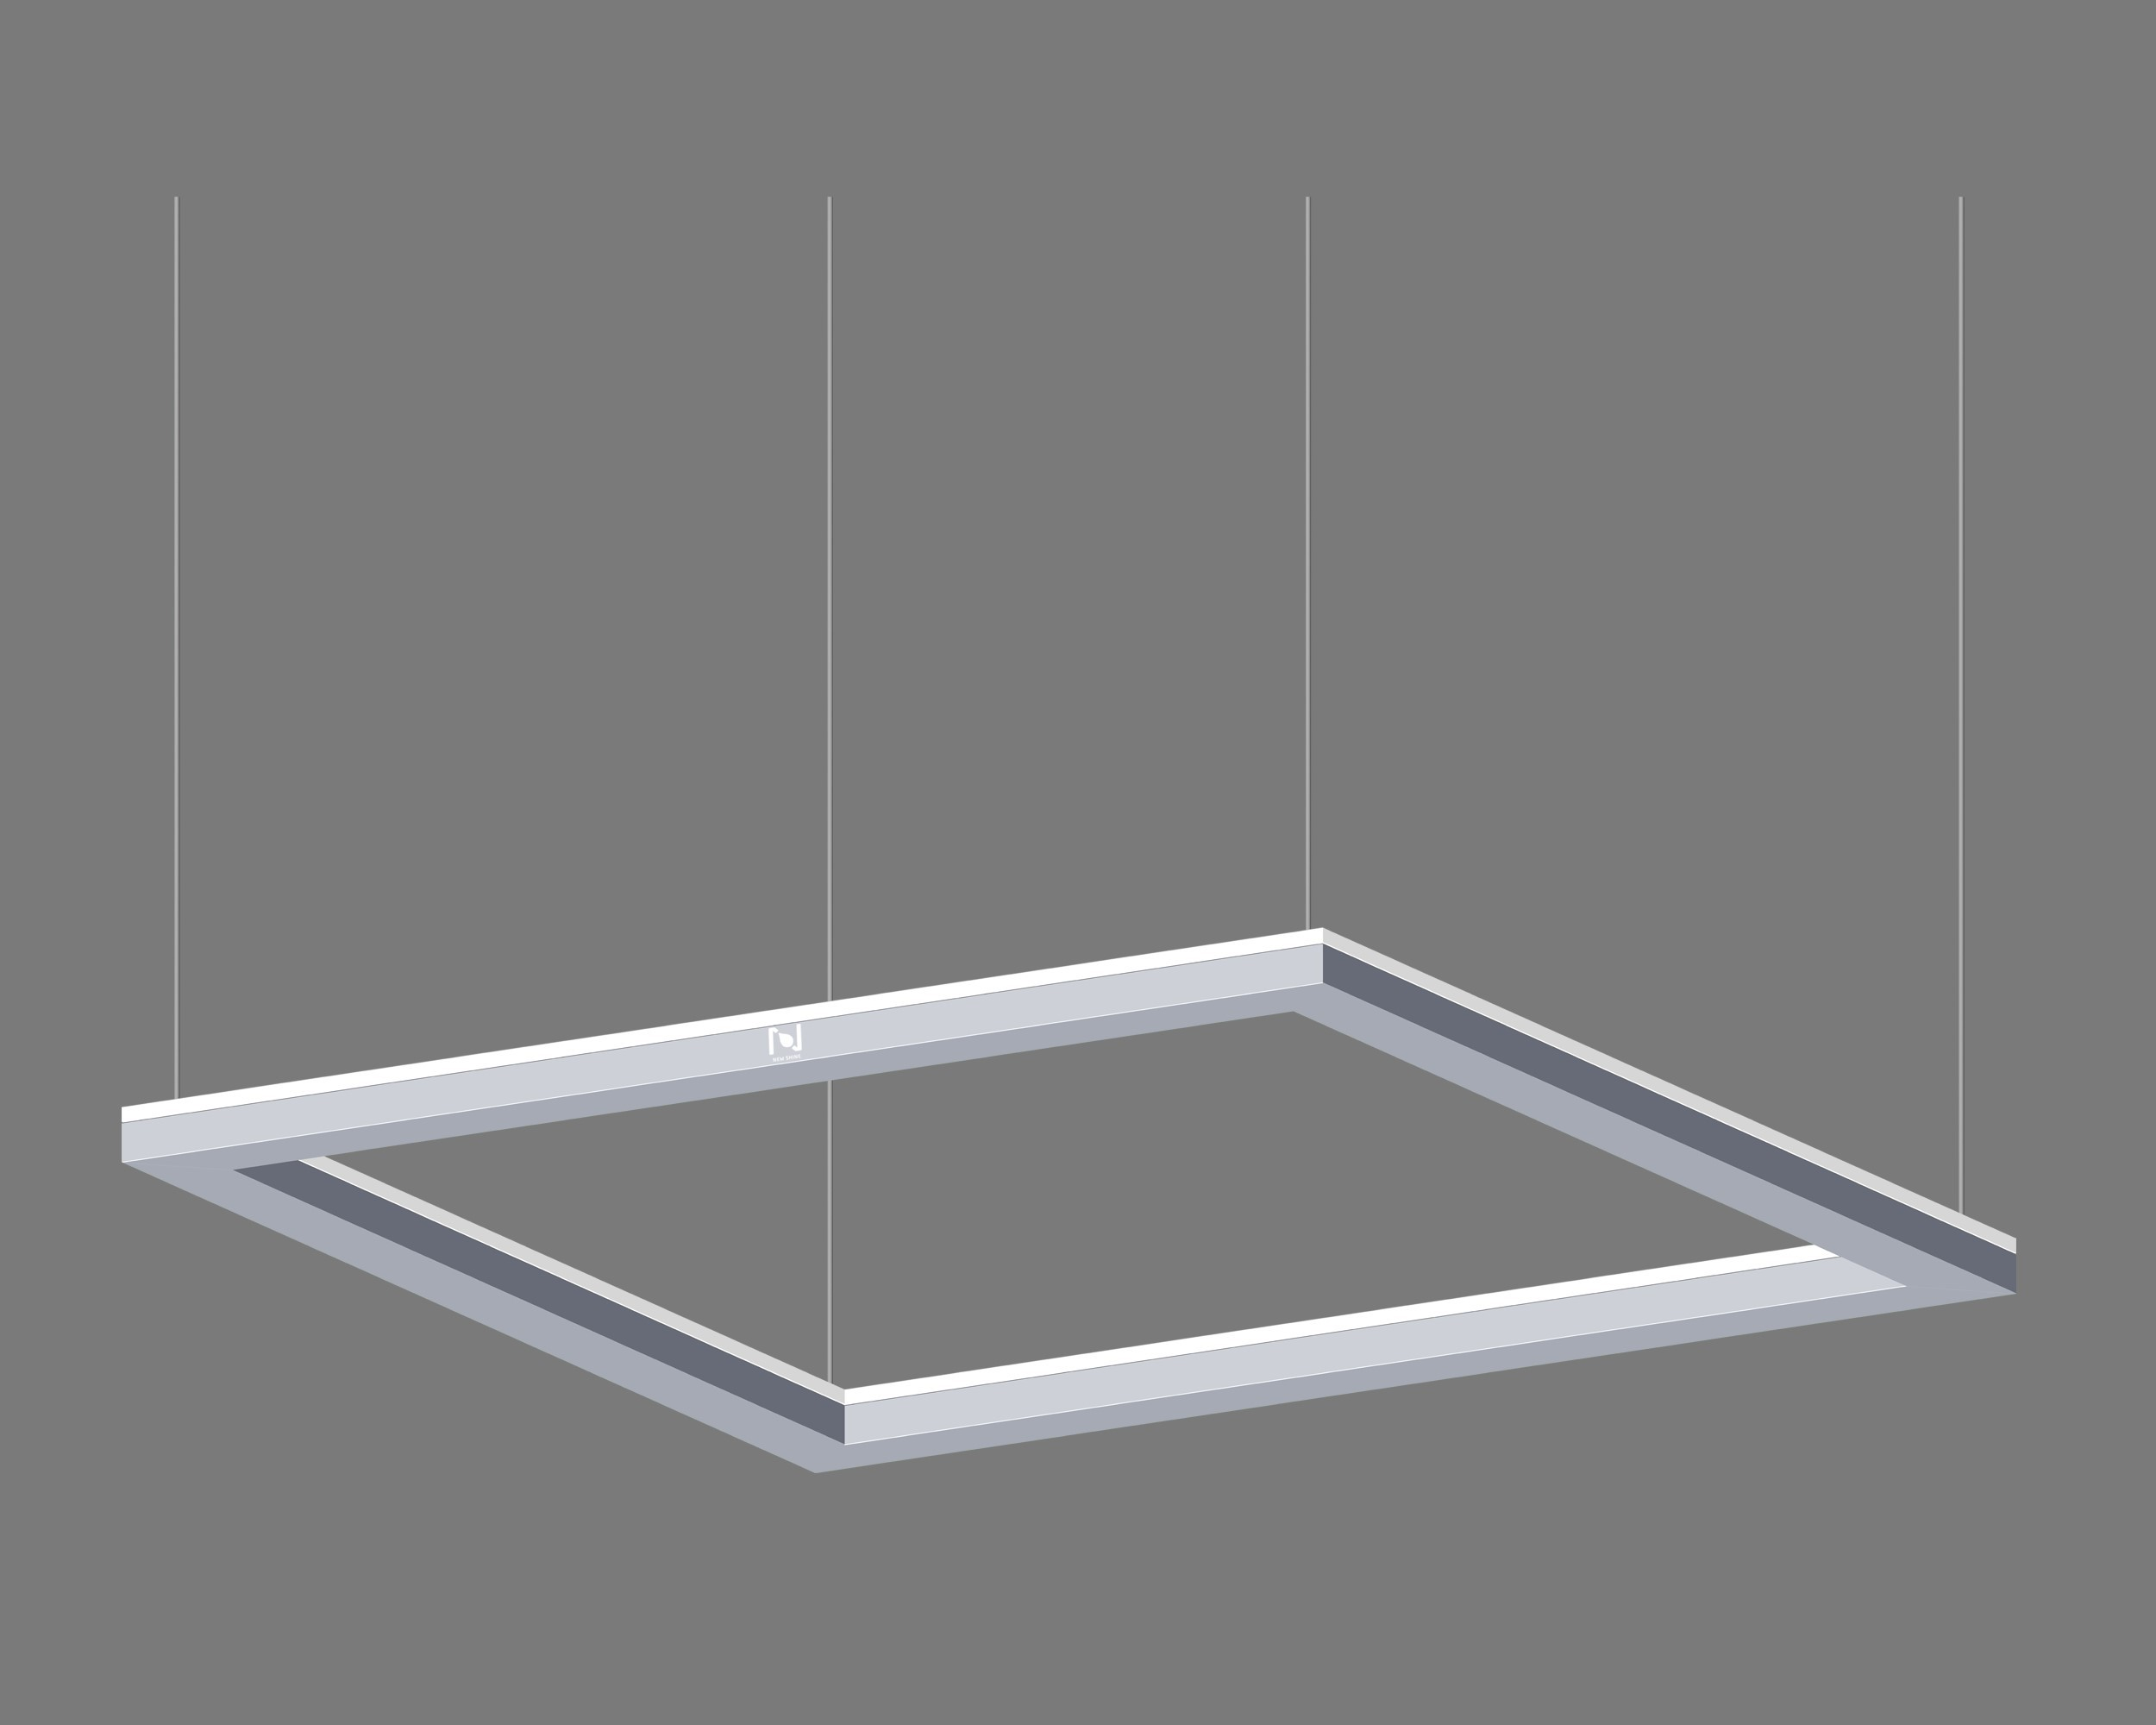 Architectural lighting manufacture indirect lit square frame light LL0195S-80W-U